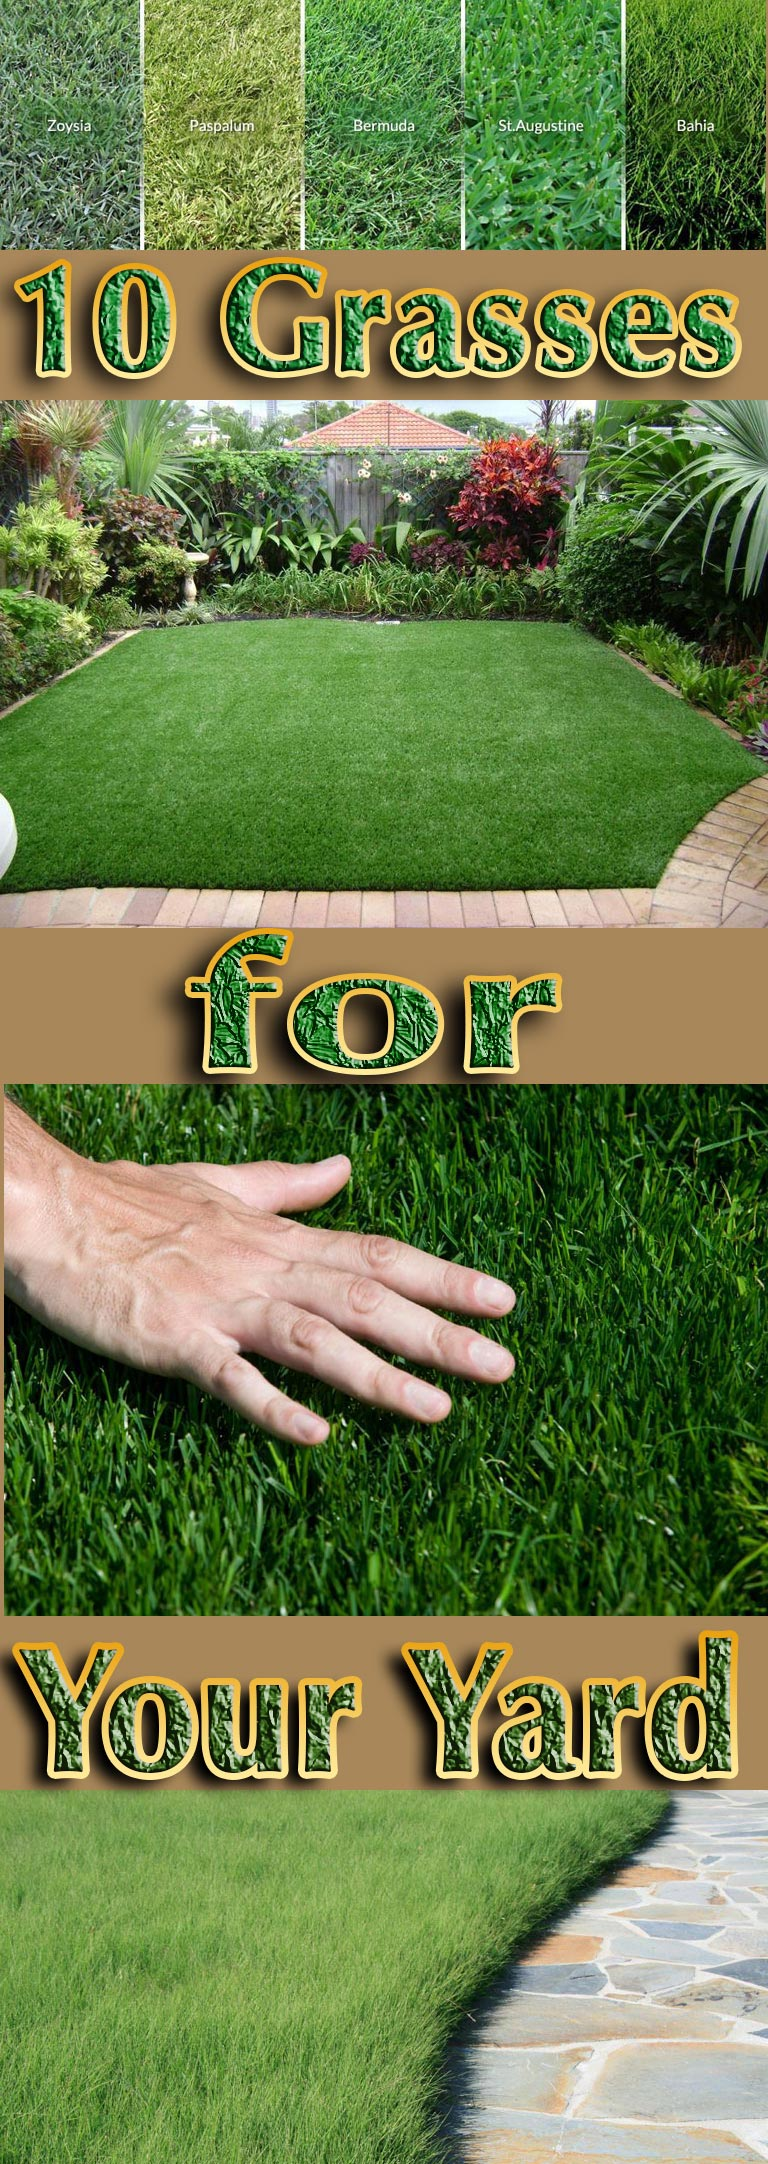 10 Grasses for Your Yard